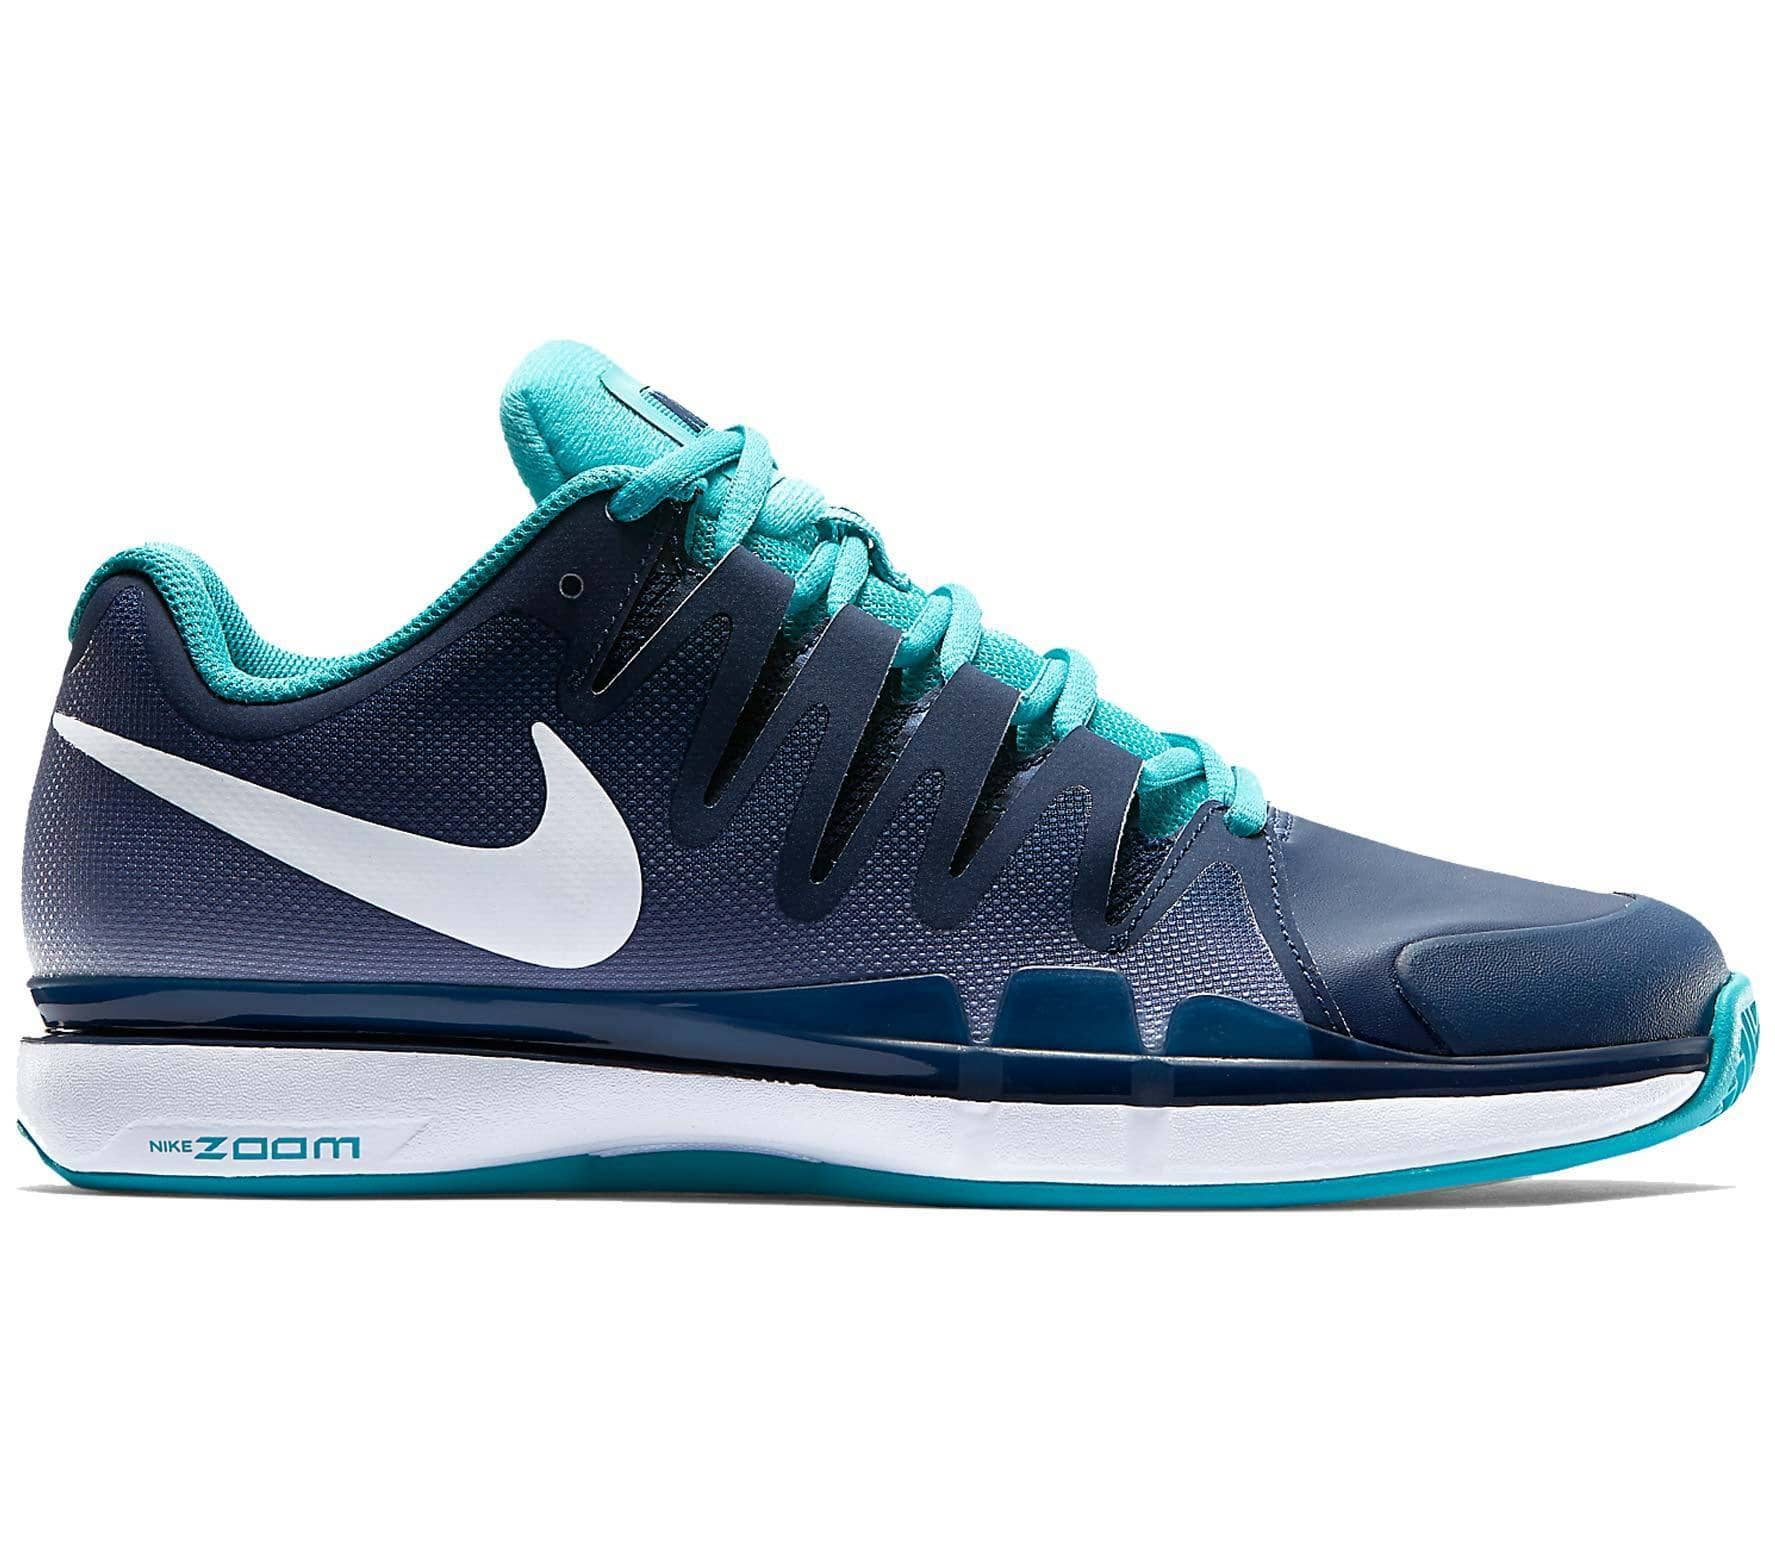 purchase cheap f2431 1c0df Nike - Zoom Vapor 9.5 Tour Clay men s tennis shoes (dark blue turquoise)